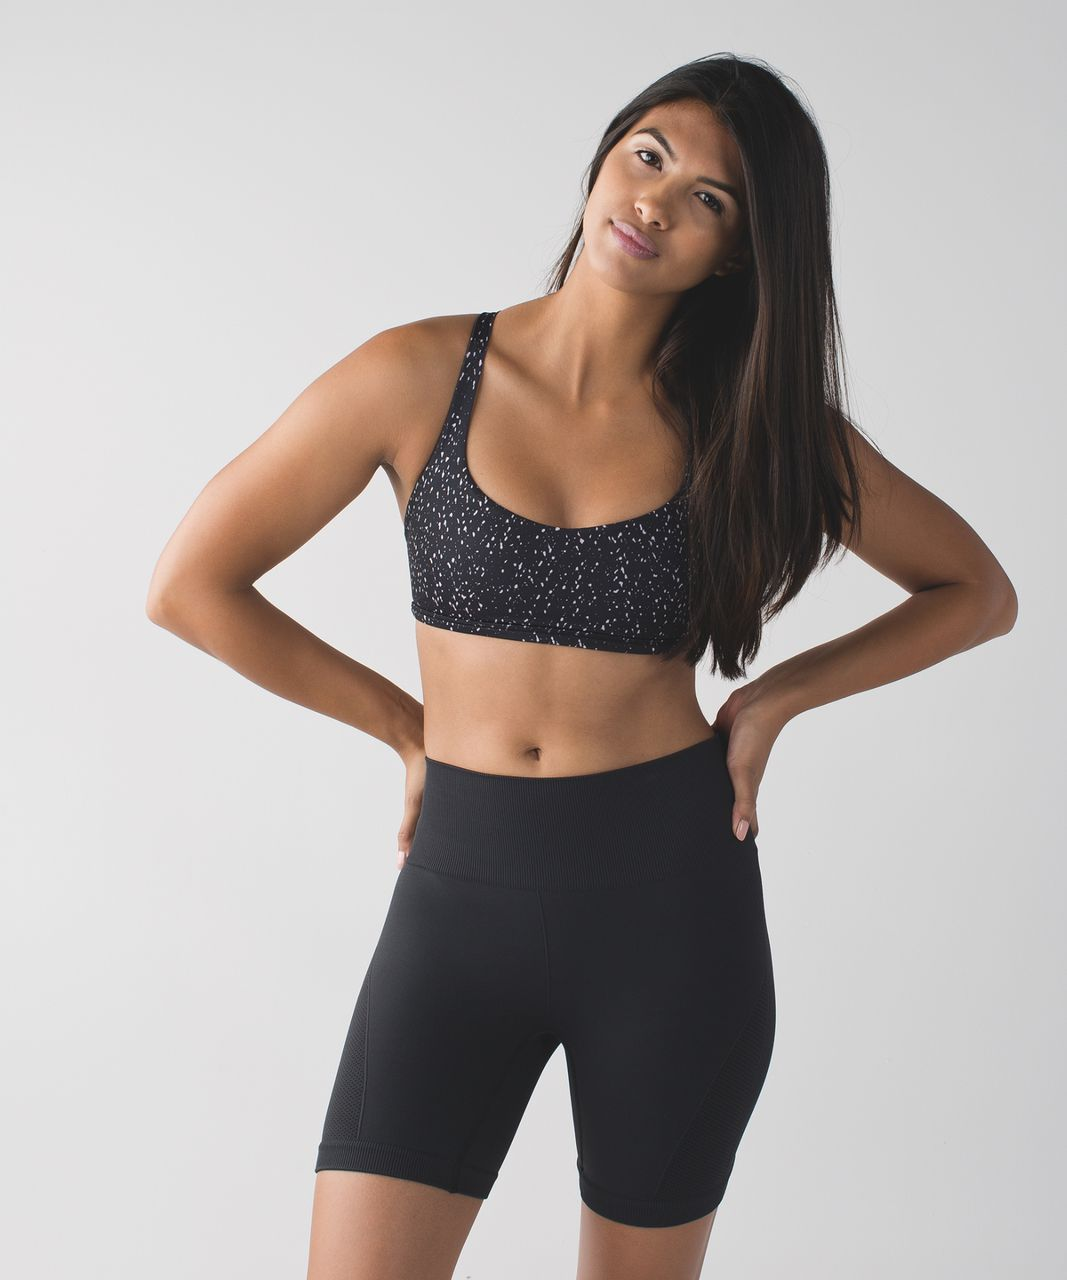 Lululemon Free To Be Bra (Wild) - Butterfly Texture Black White / Flash Light